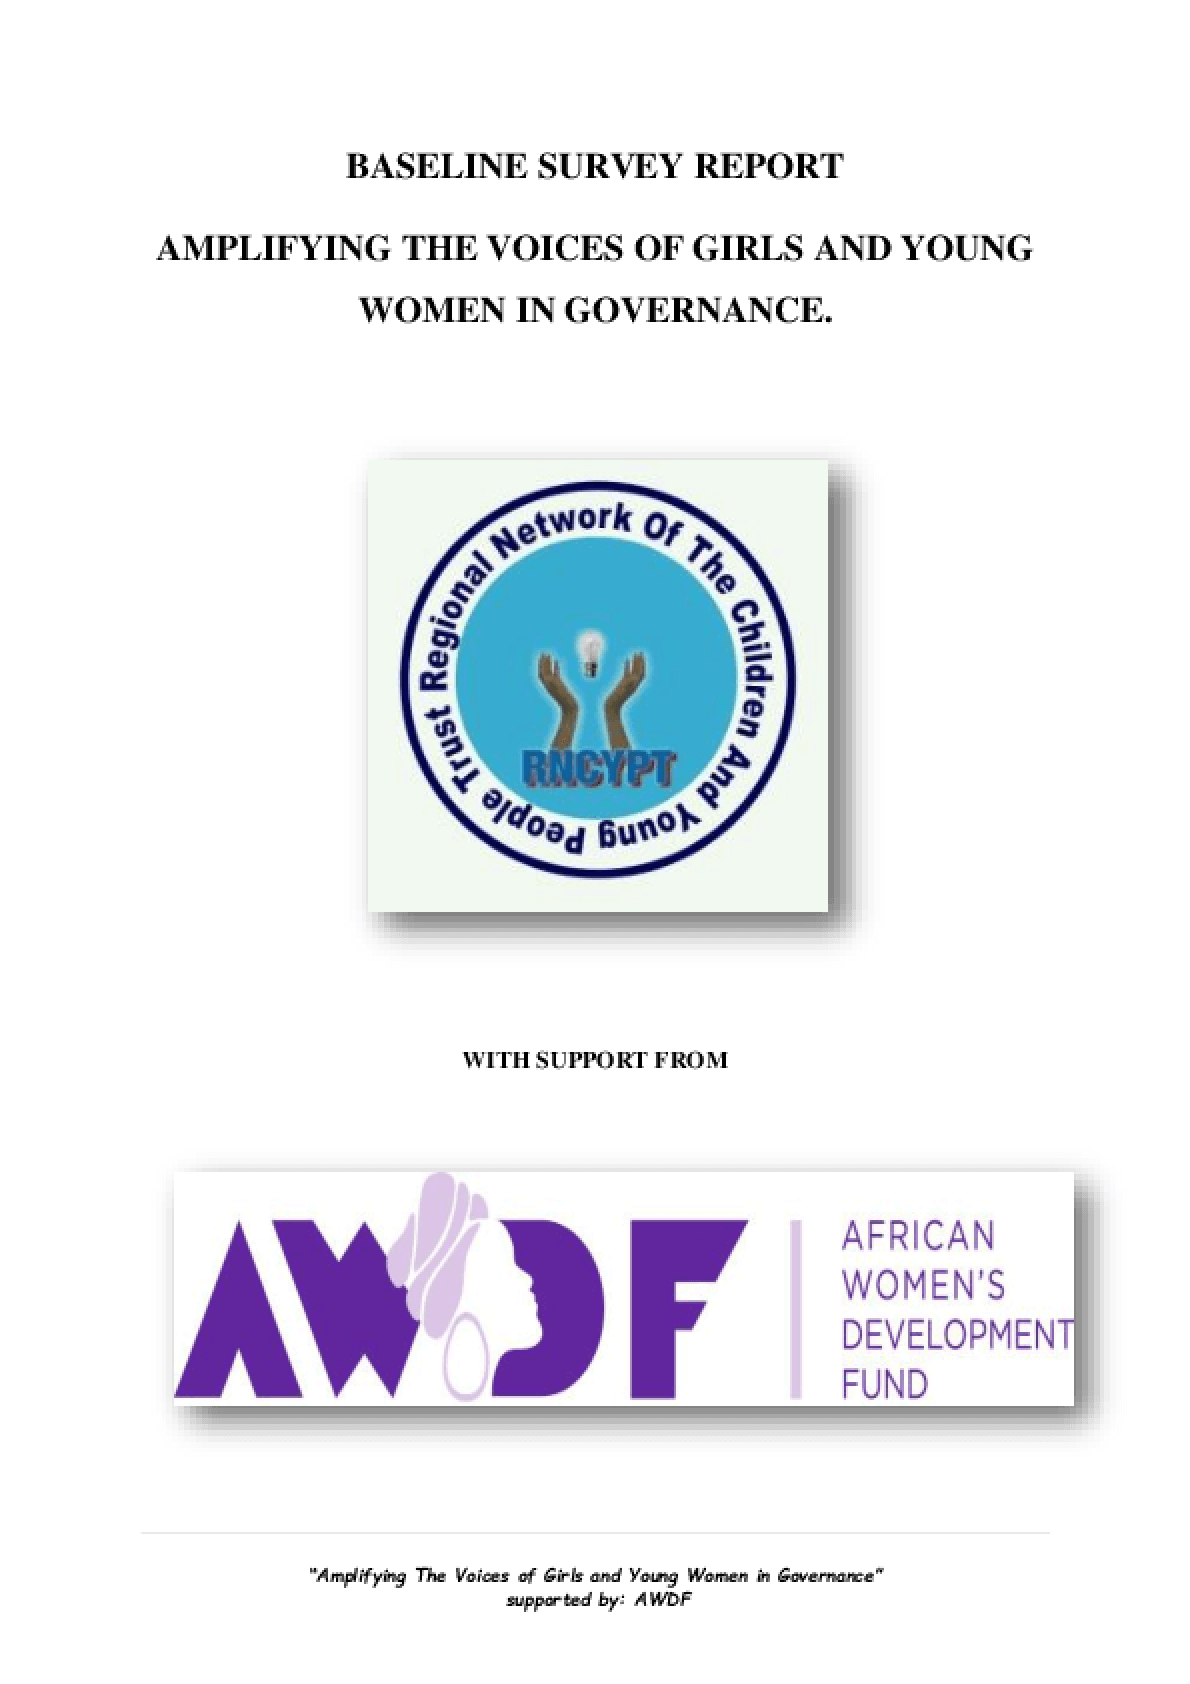 Baseline Survey Report: Amplifying the Voices of Girls and Young Women in Governance